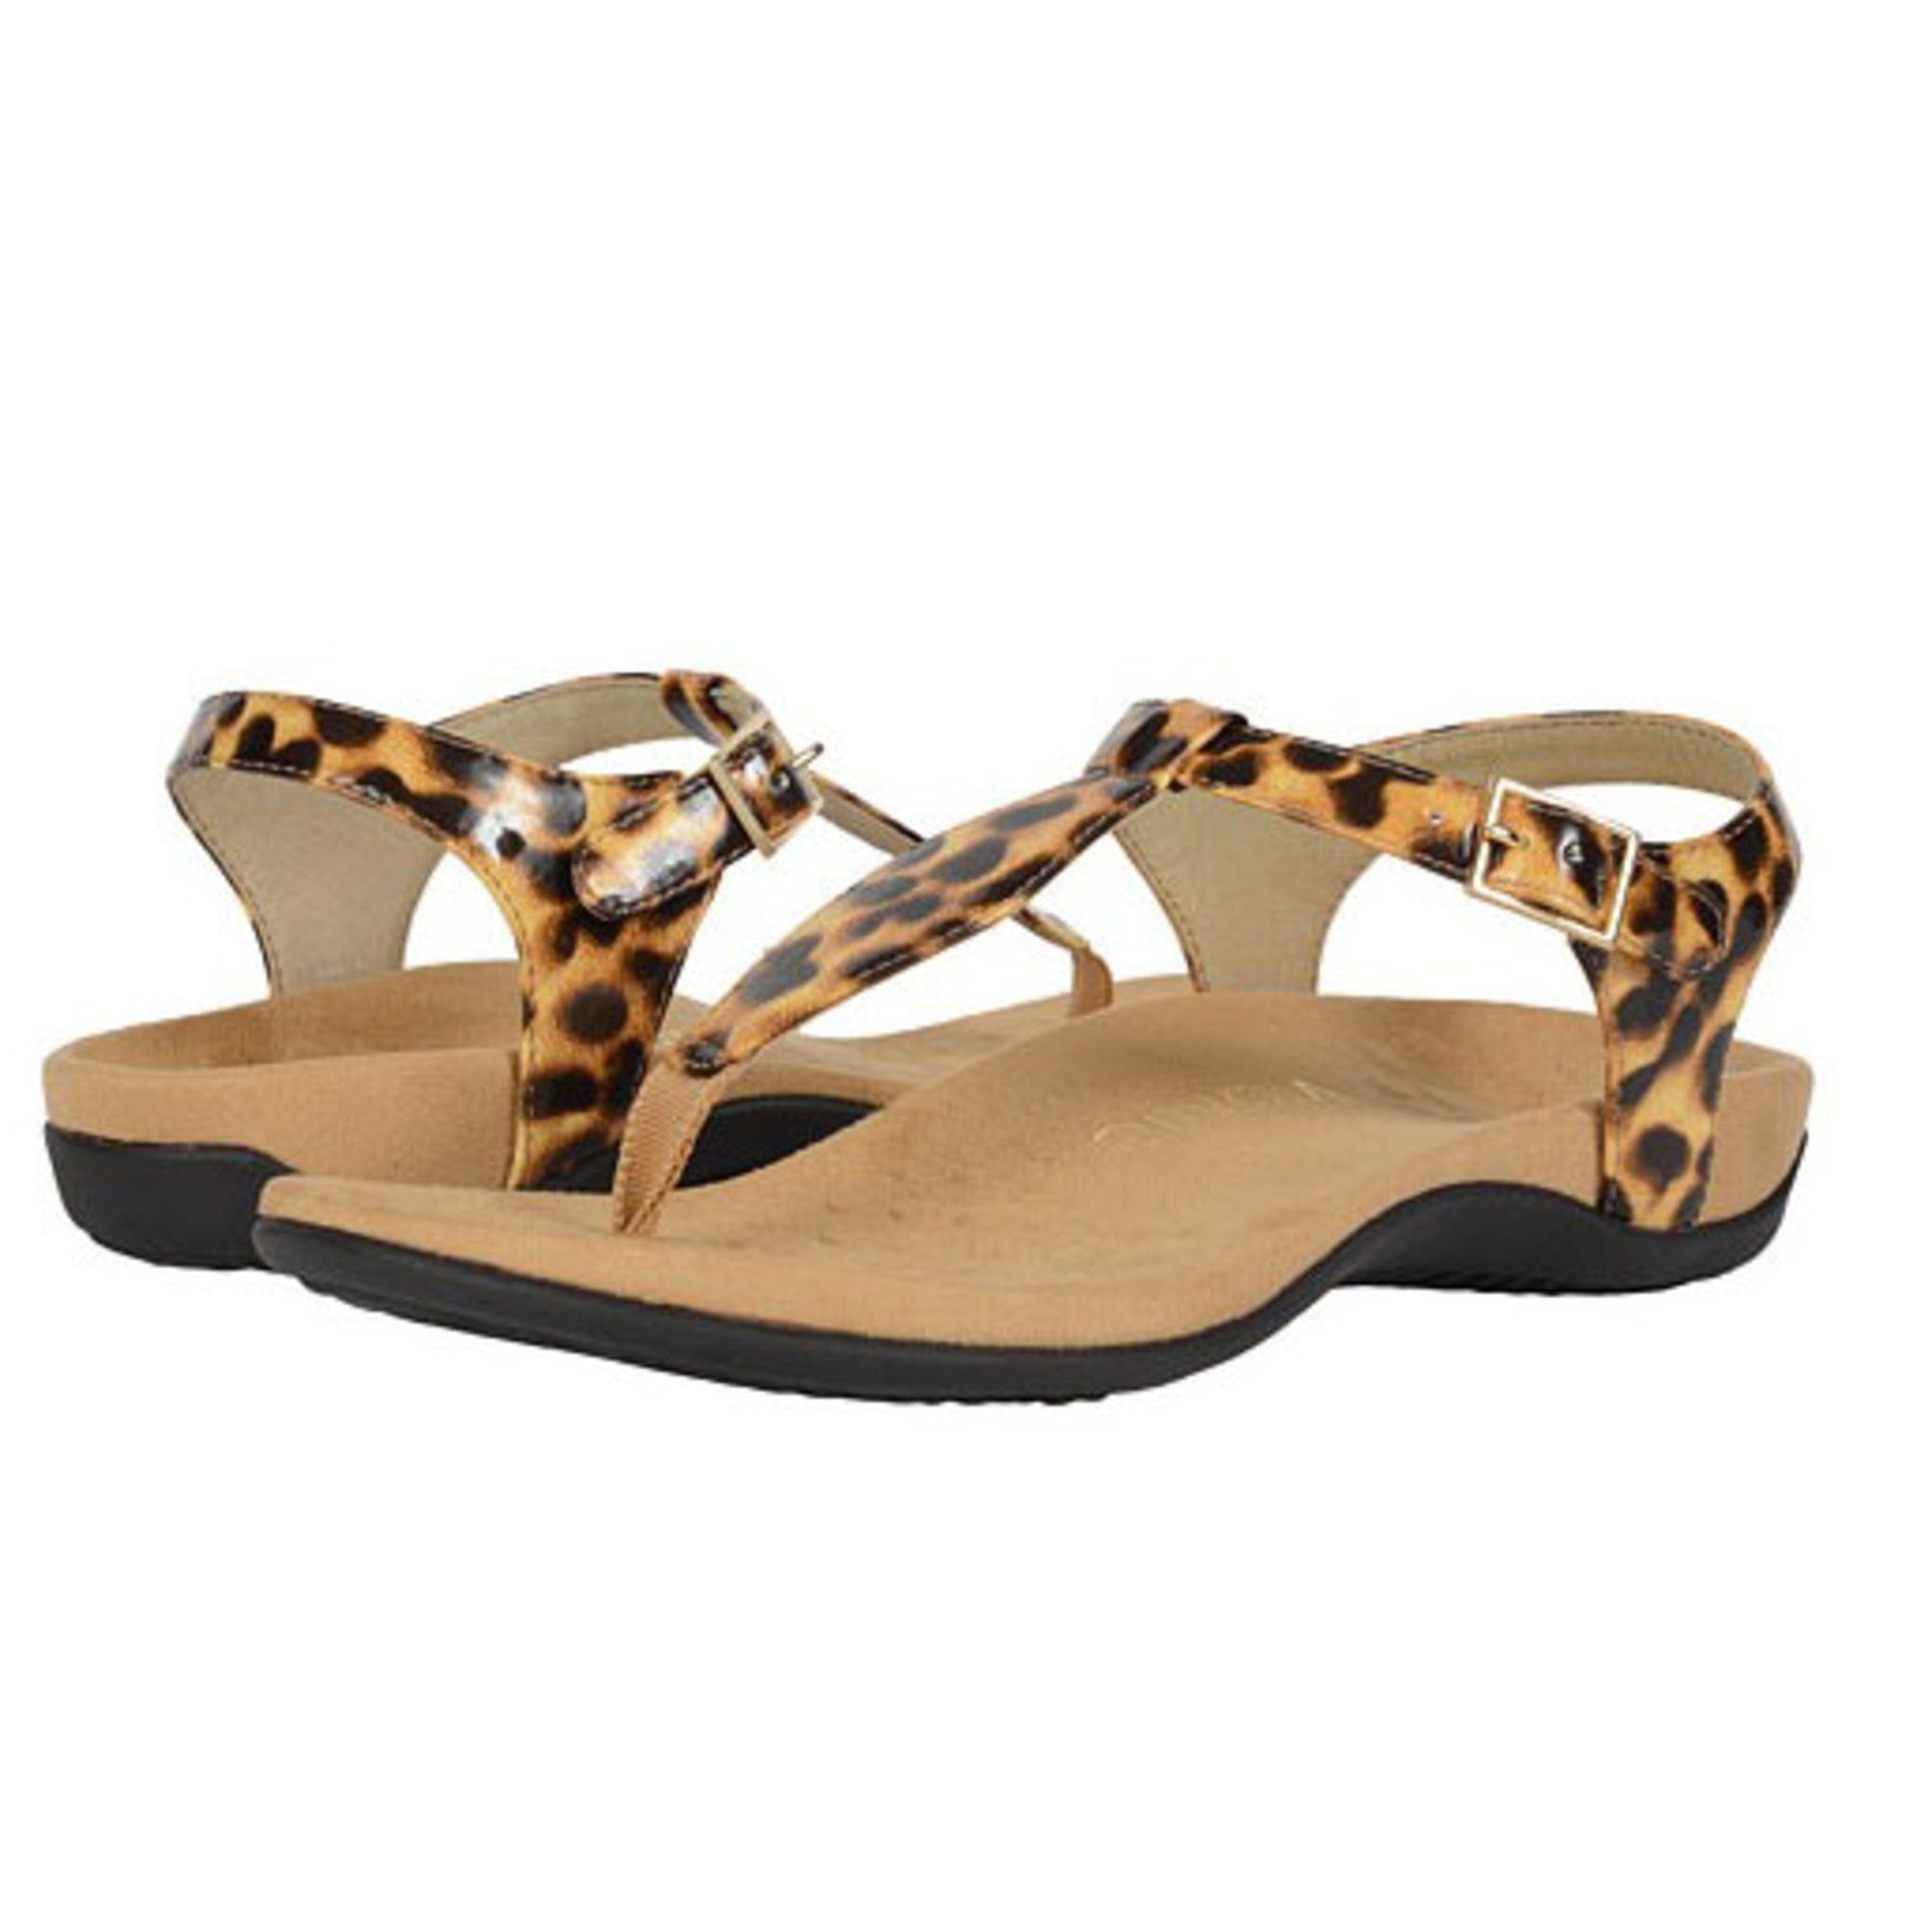 "f14dd6ff0ac9 Vionic Paden Sandal  ""I like Vionic sandals because a podiatrist created  the company. No one knows the foot s biomechanics better than a podiatrist."